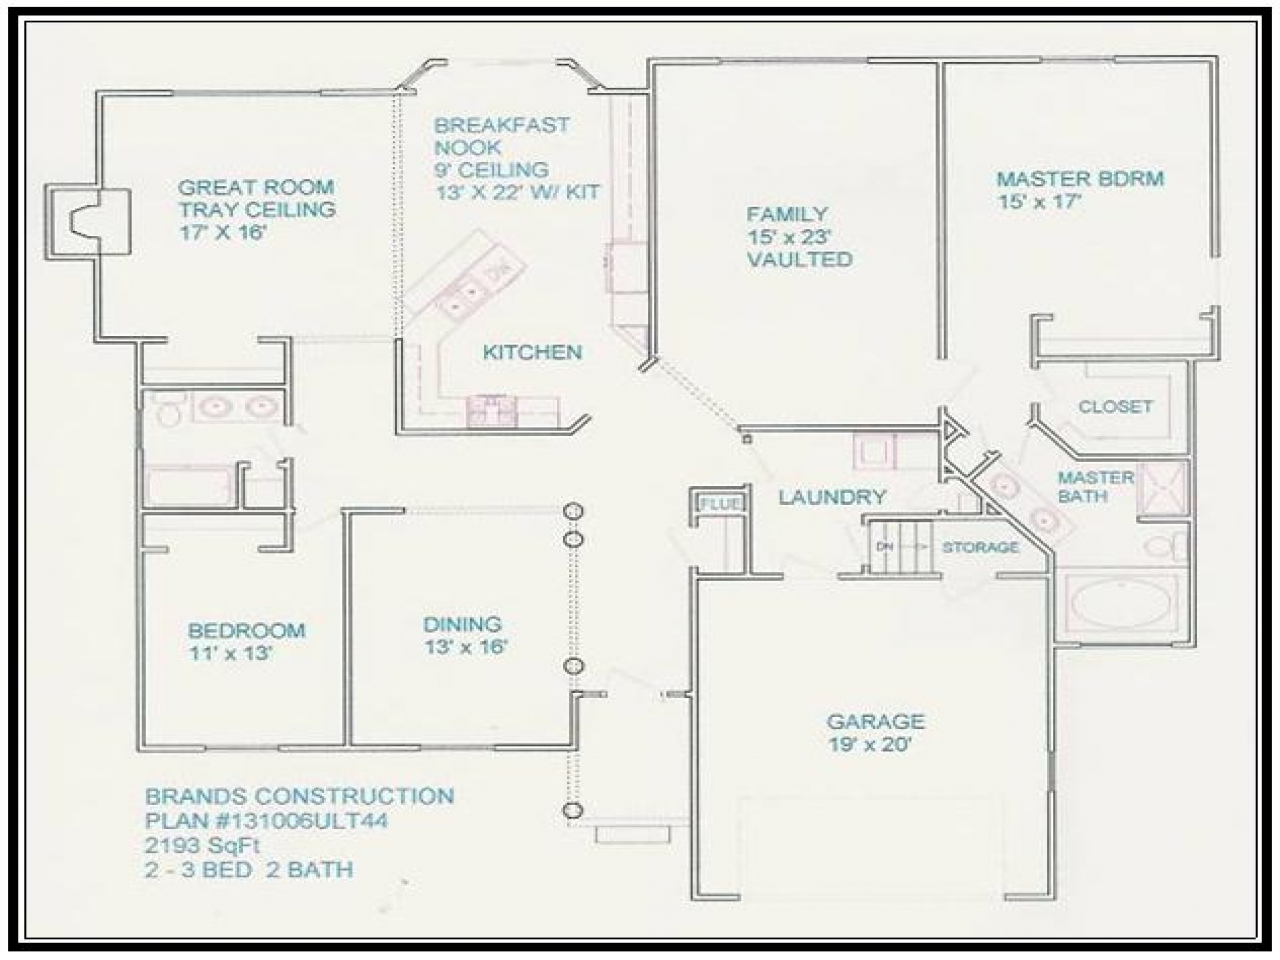 free floor plans online free house floor plans and designs free home floor plans 4 bedrooms plans for homes free 4826